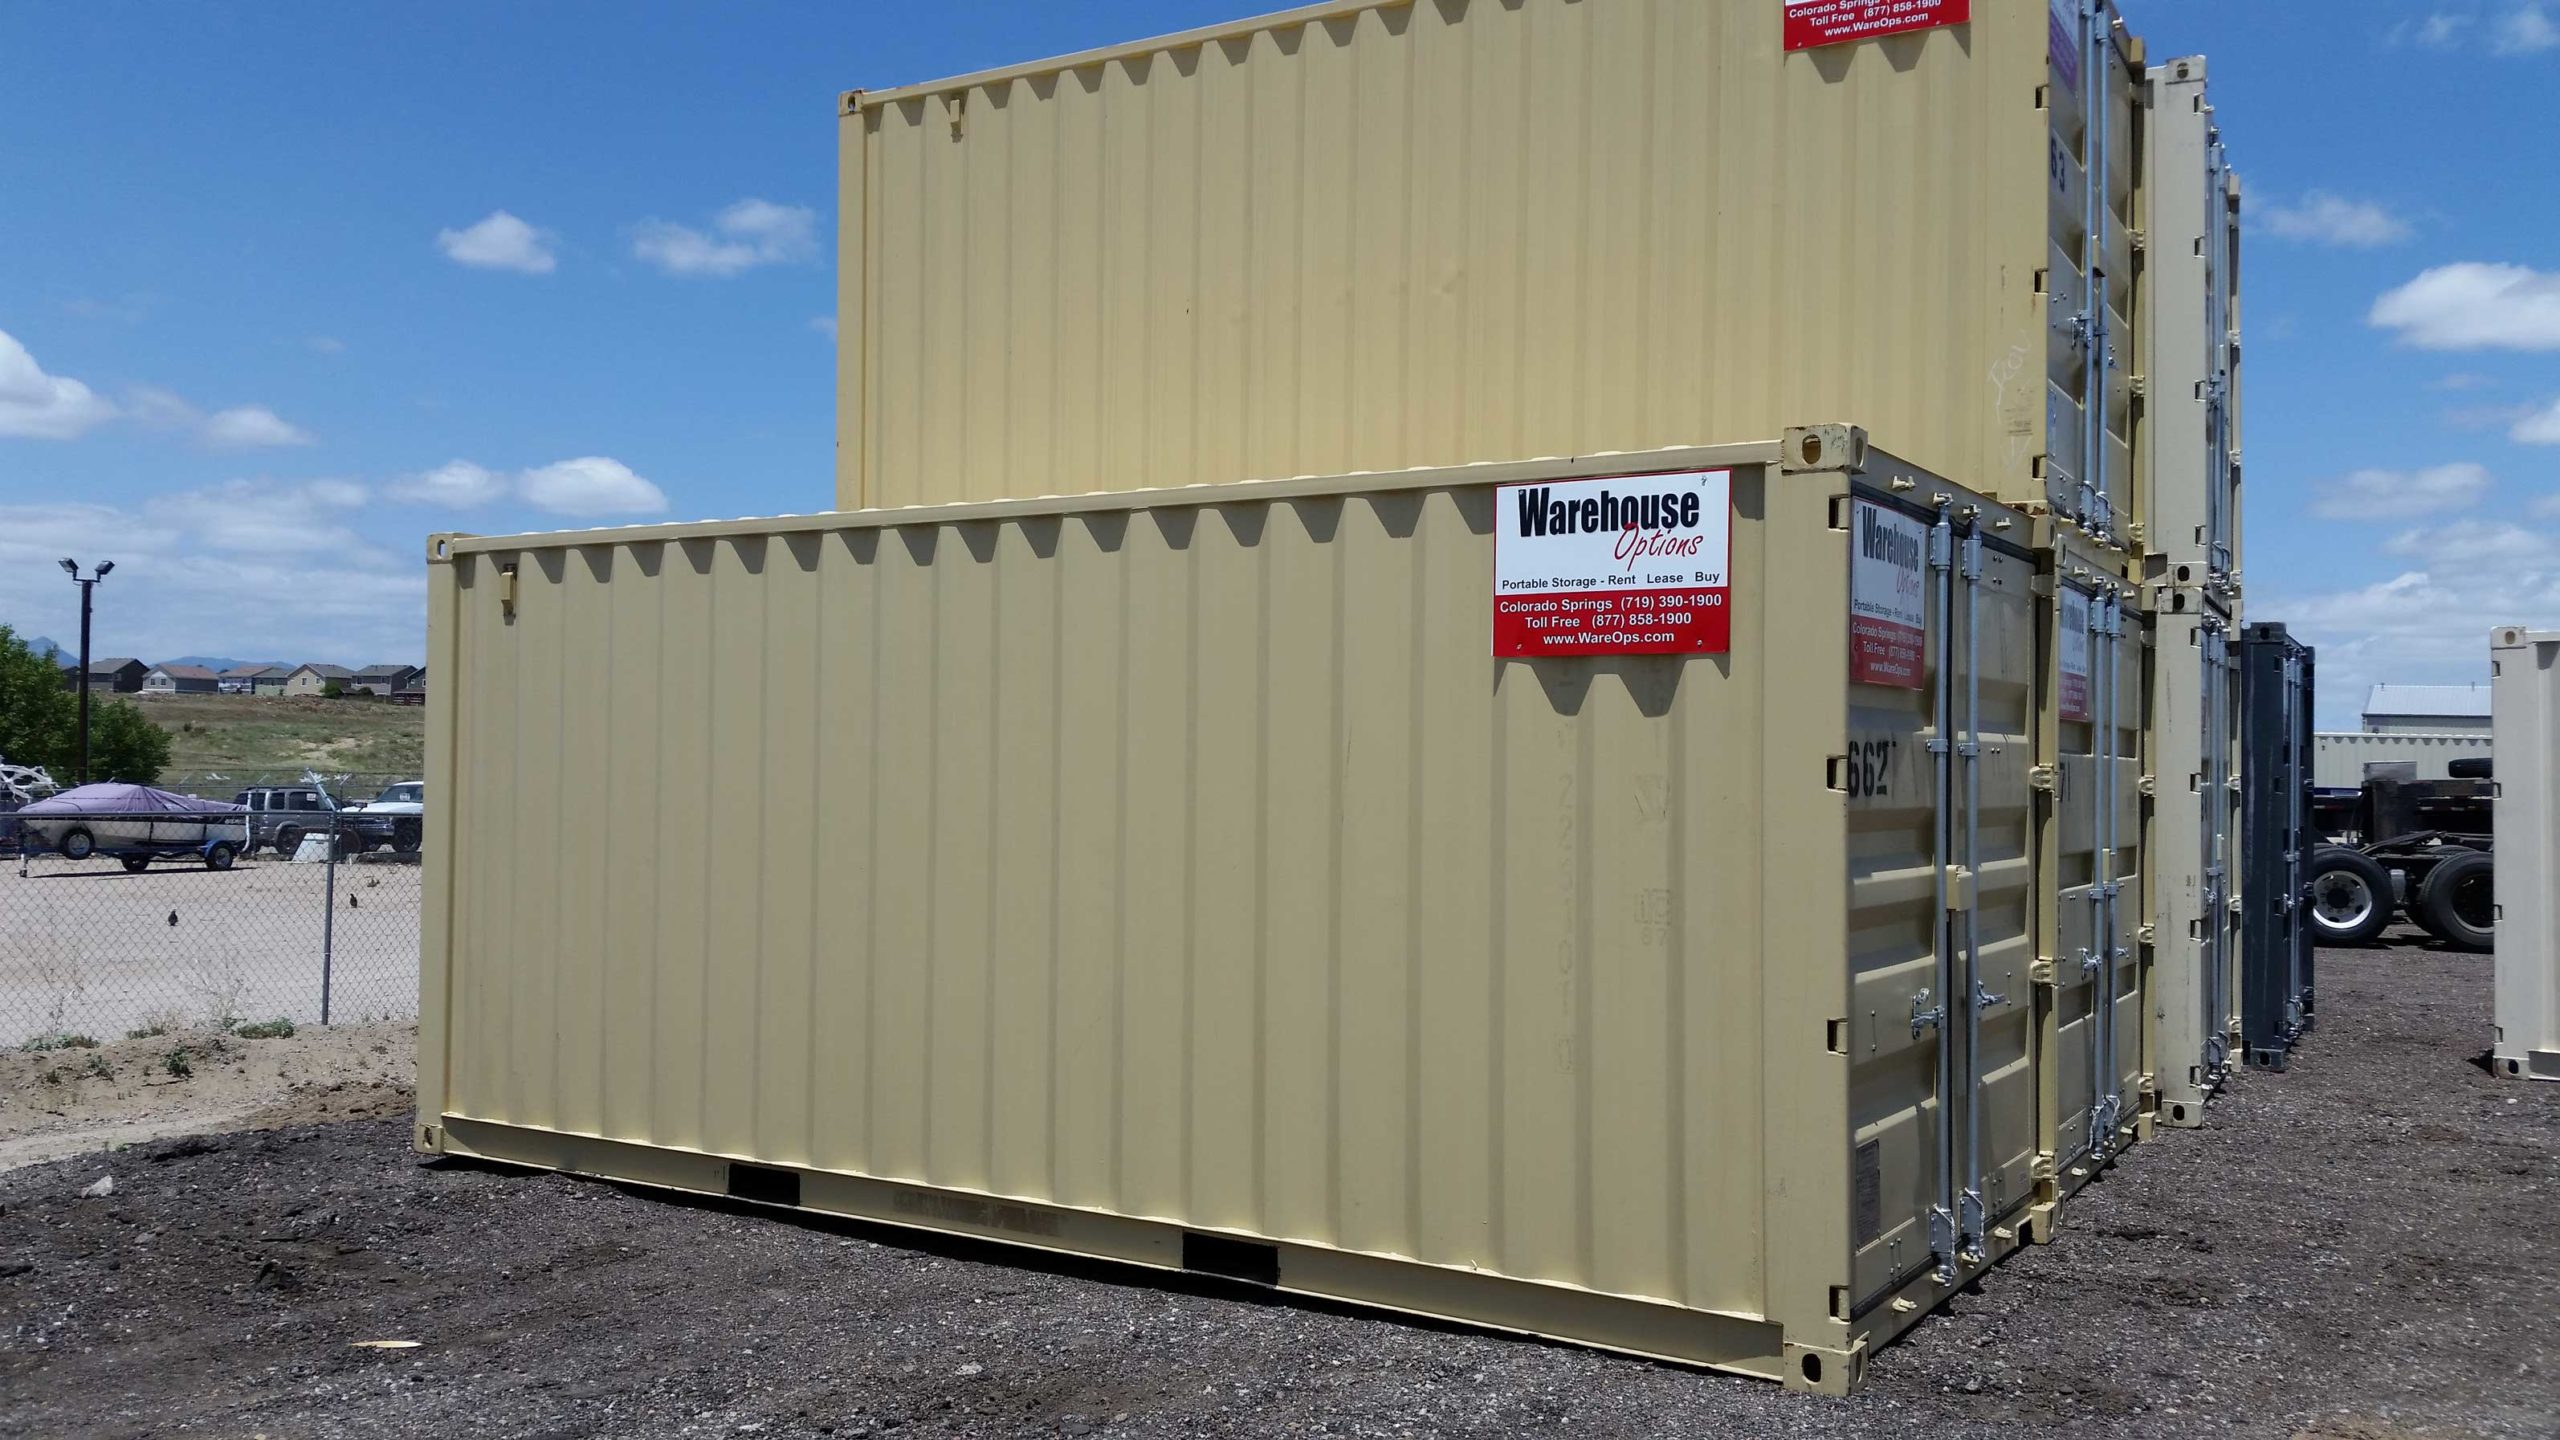 Used shipping container for sale image 1 ... & 20-foot One Trip Storage Containers - $4800 u2022 Warehouse Options